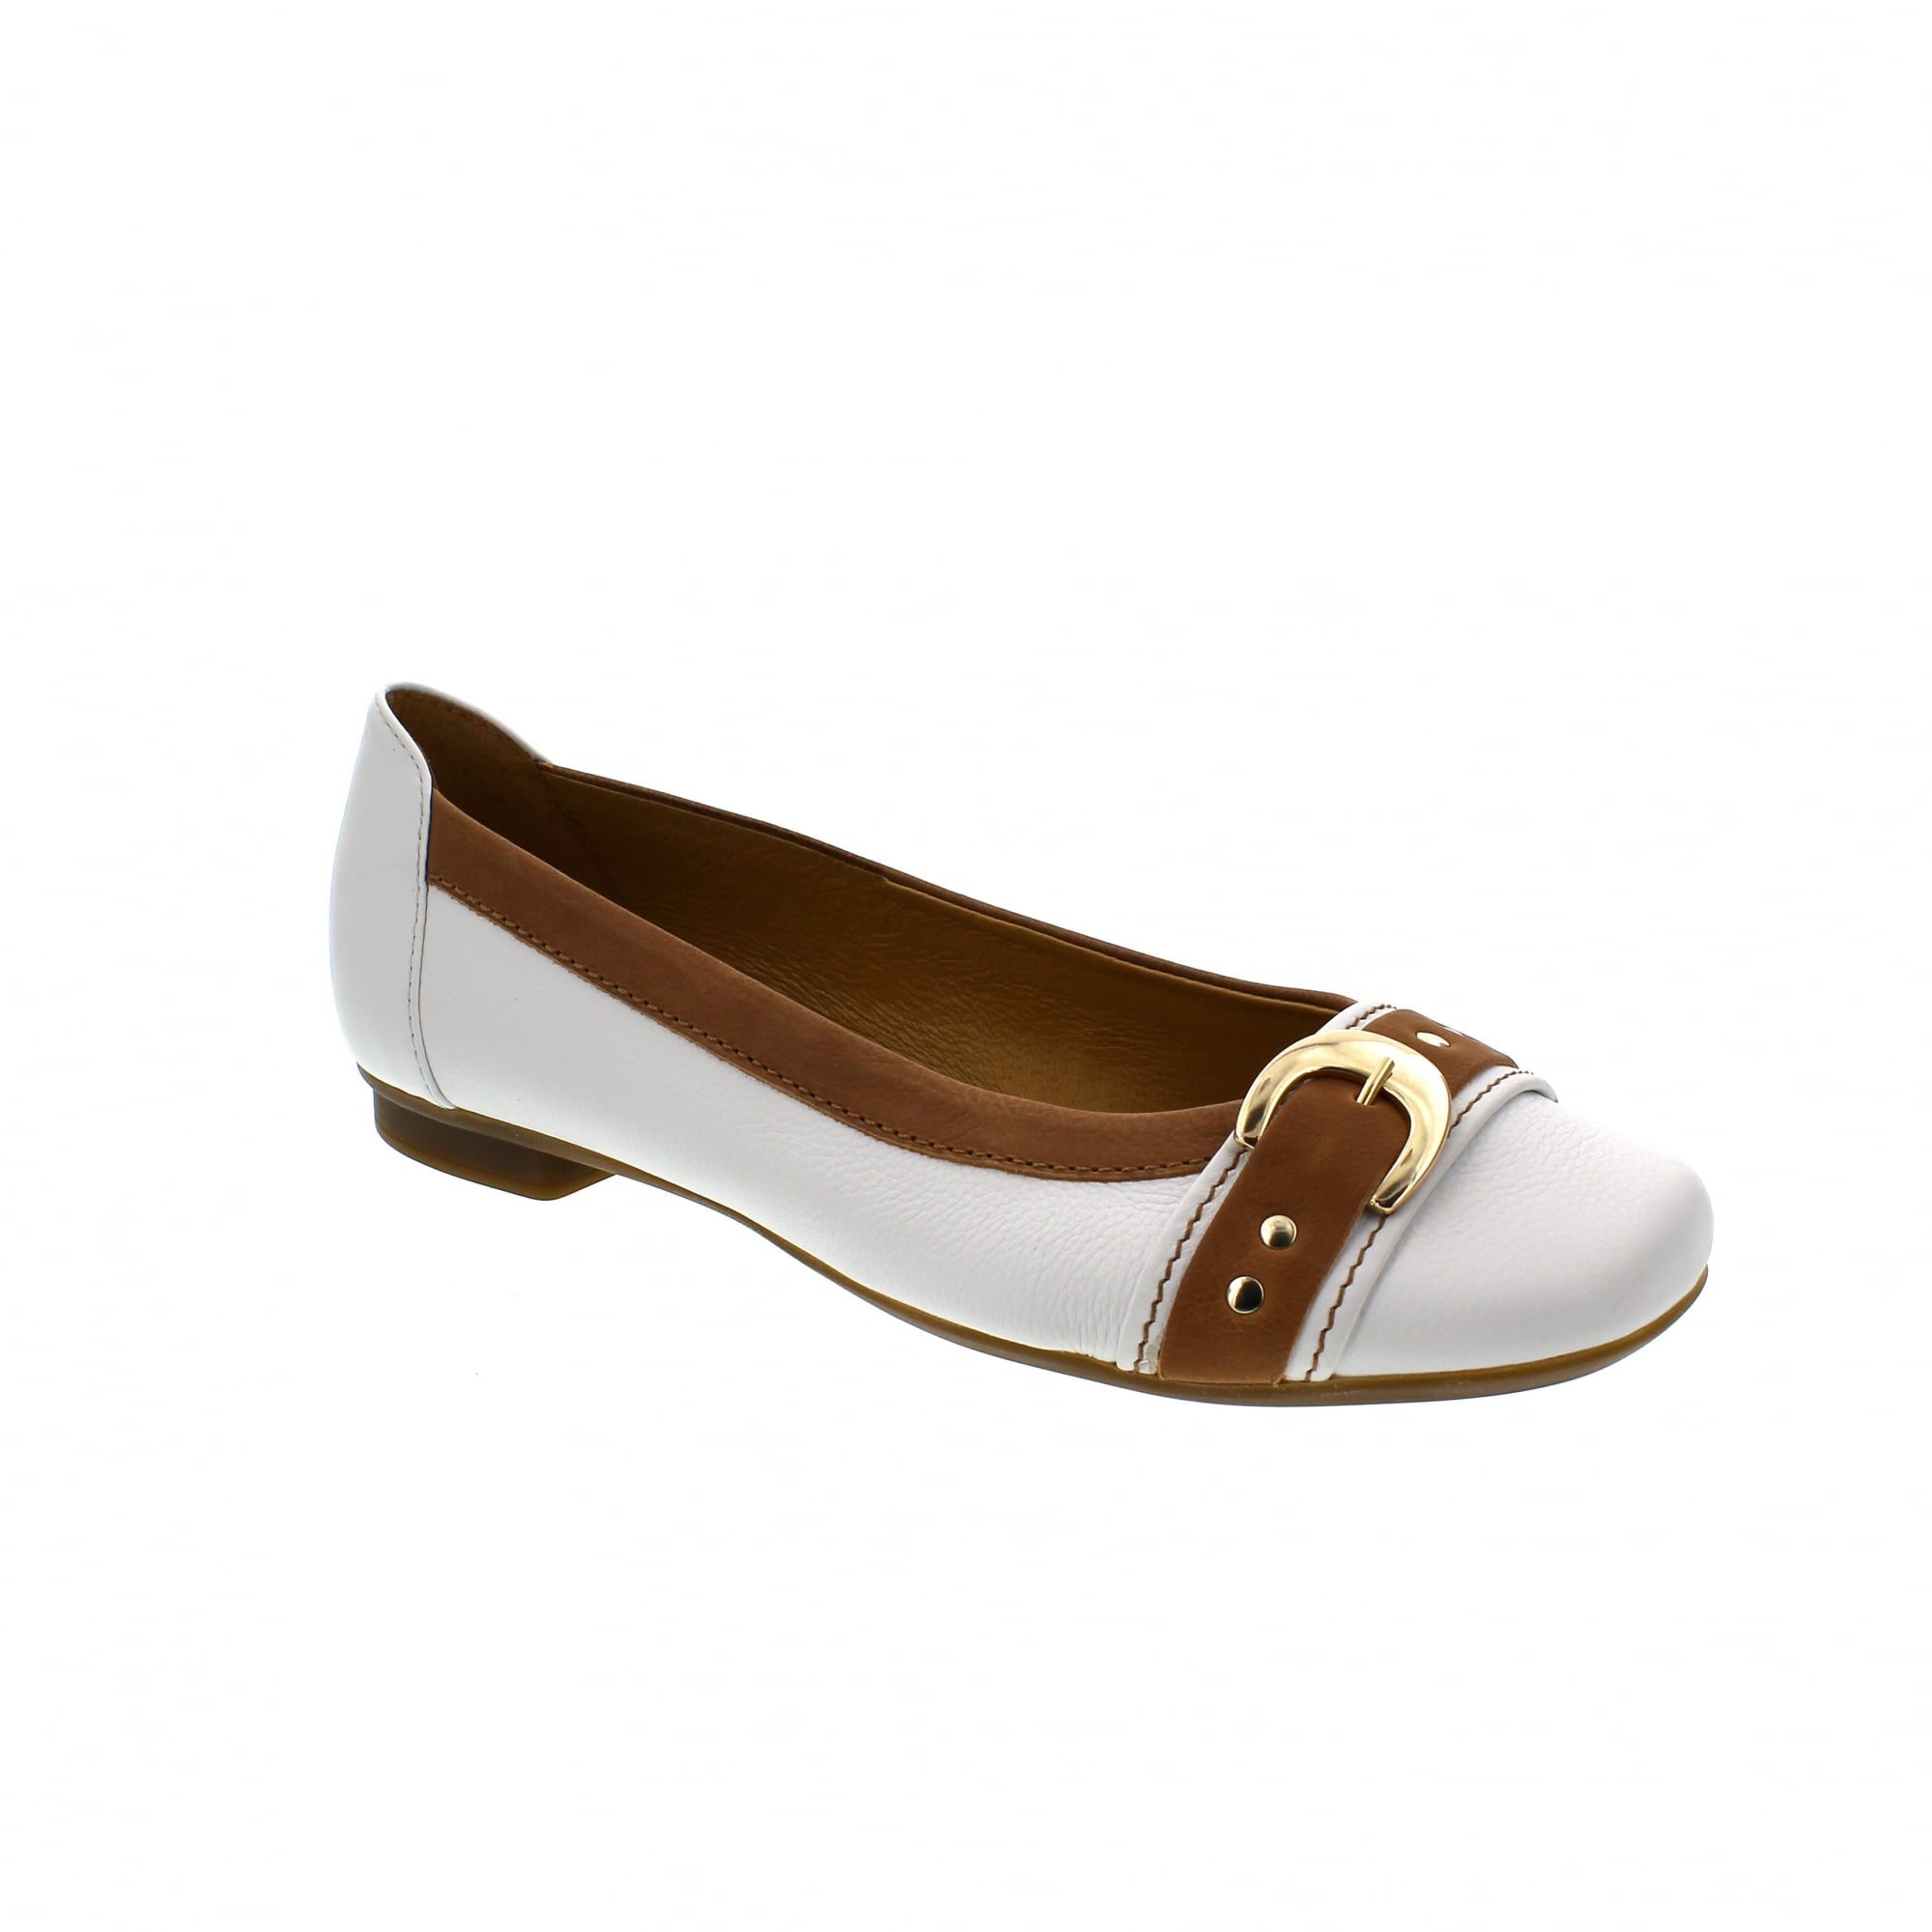 c6c3053cb254 Gabor Indiana   84-113-24 - Womens from Rogerson Shoes UK